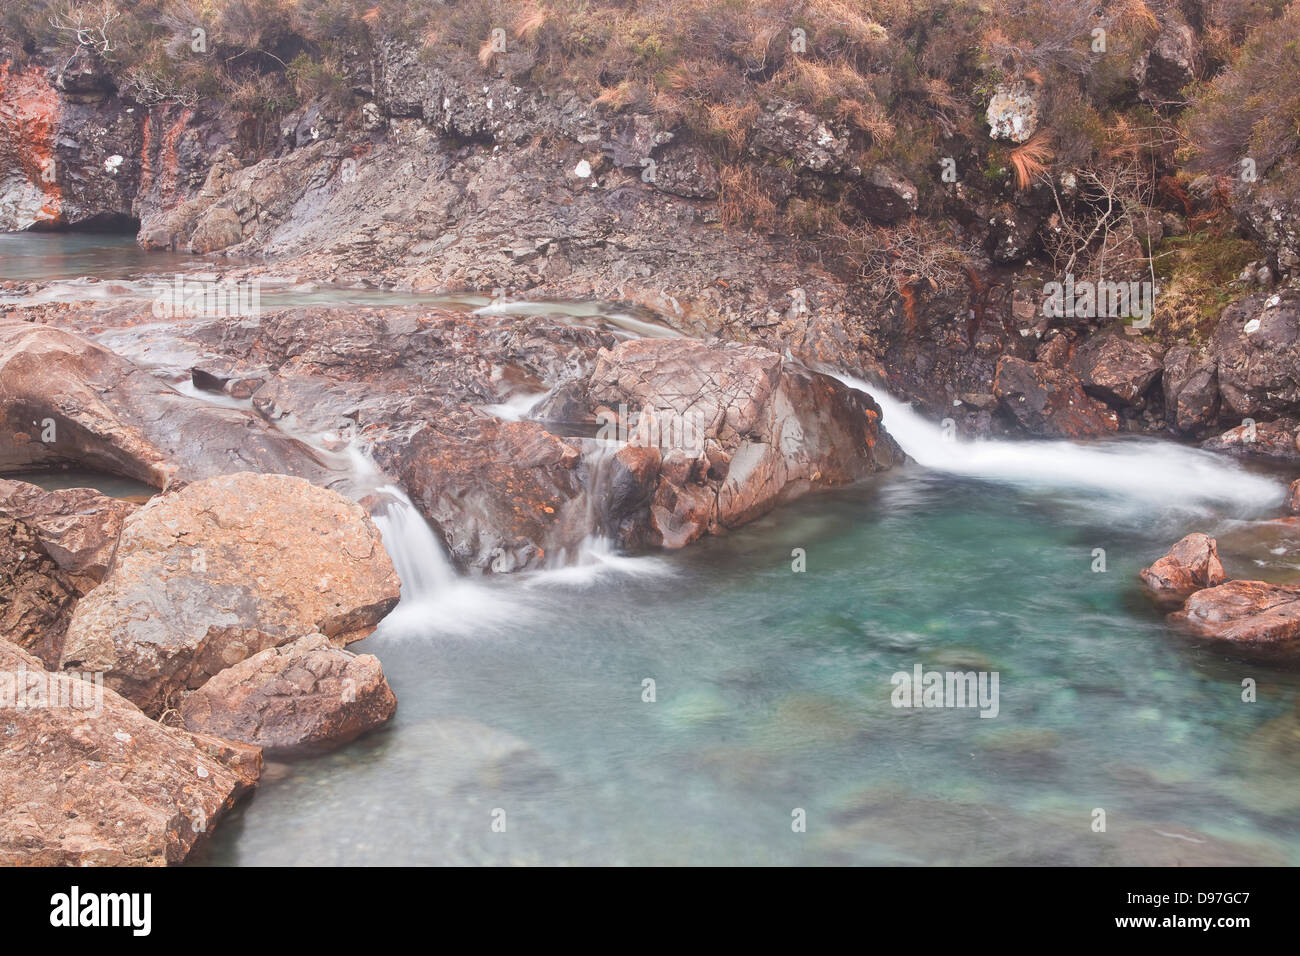 The turquoise waters of the Fairy Pools on the Isle of Skye. - Stock Image